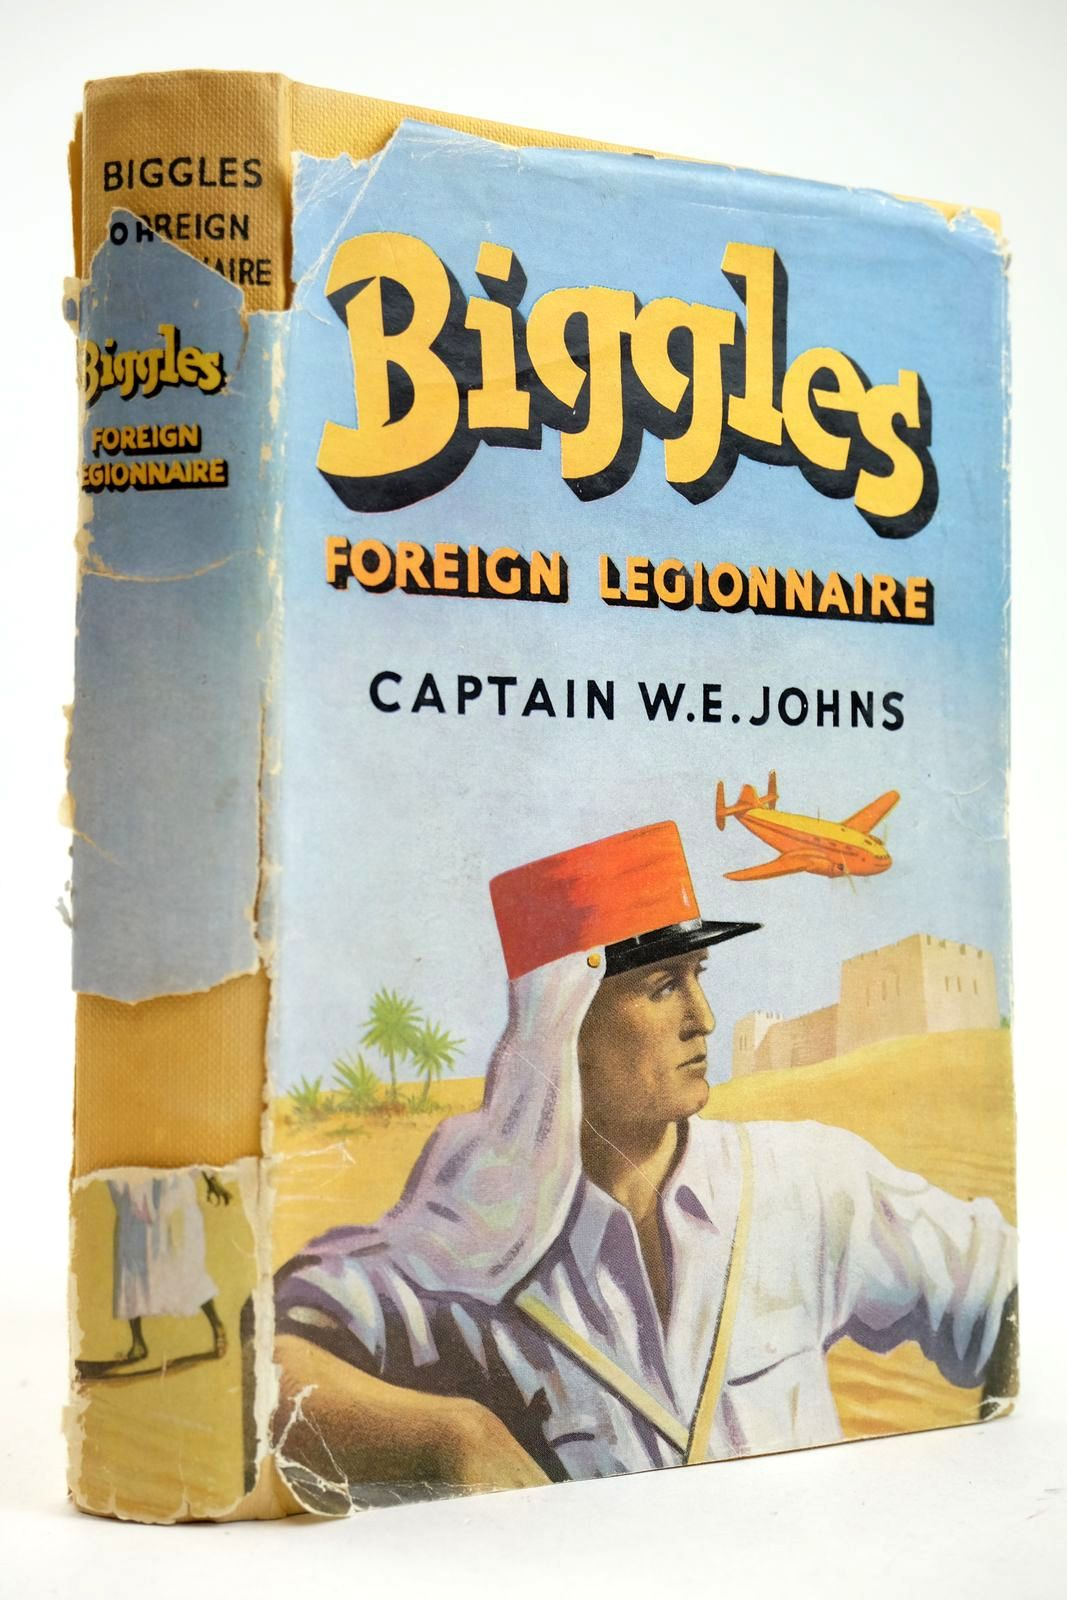 Photo of BIGGLES FOREIGN LEGIONNAIRE written by Johns, W.E. published by The Children's Book Club (STOCK CODE: 2132711)  for sale by Stella & Rose's Books